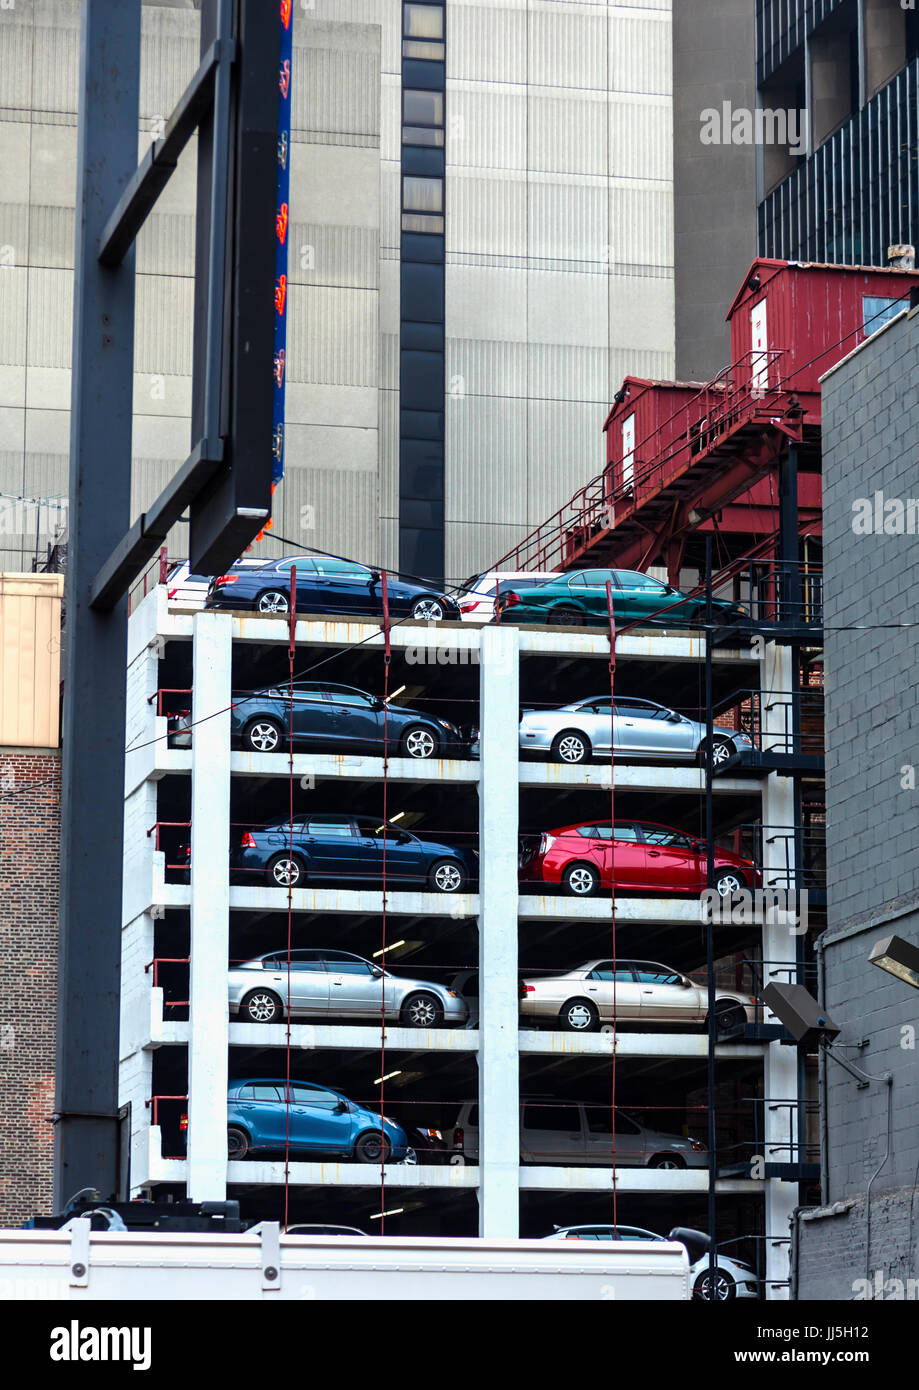 Car stack parking in New York saves space but can take longer to retrieve your vehicle - Stock Image